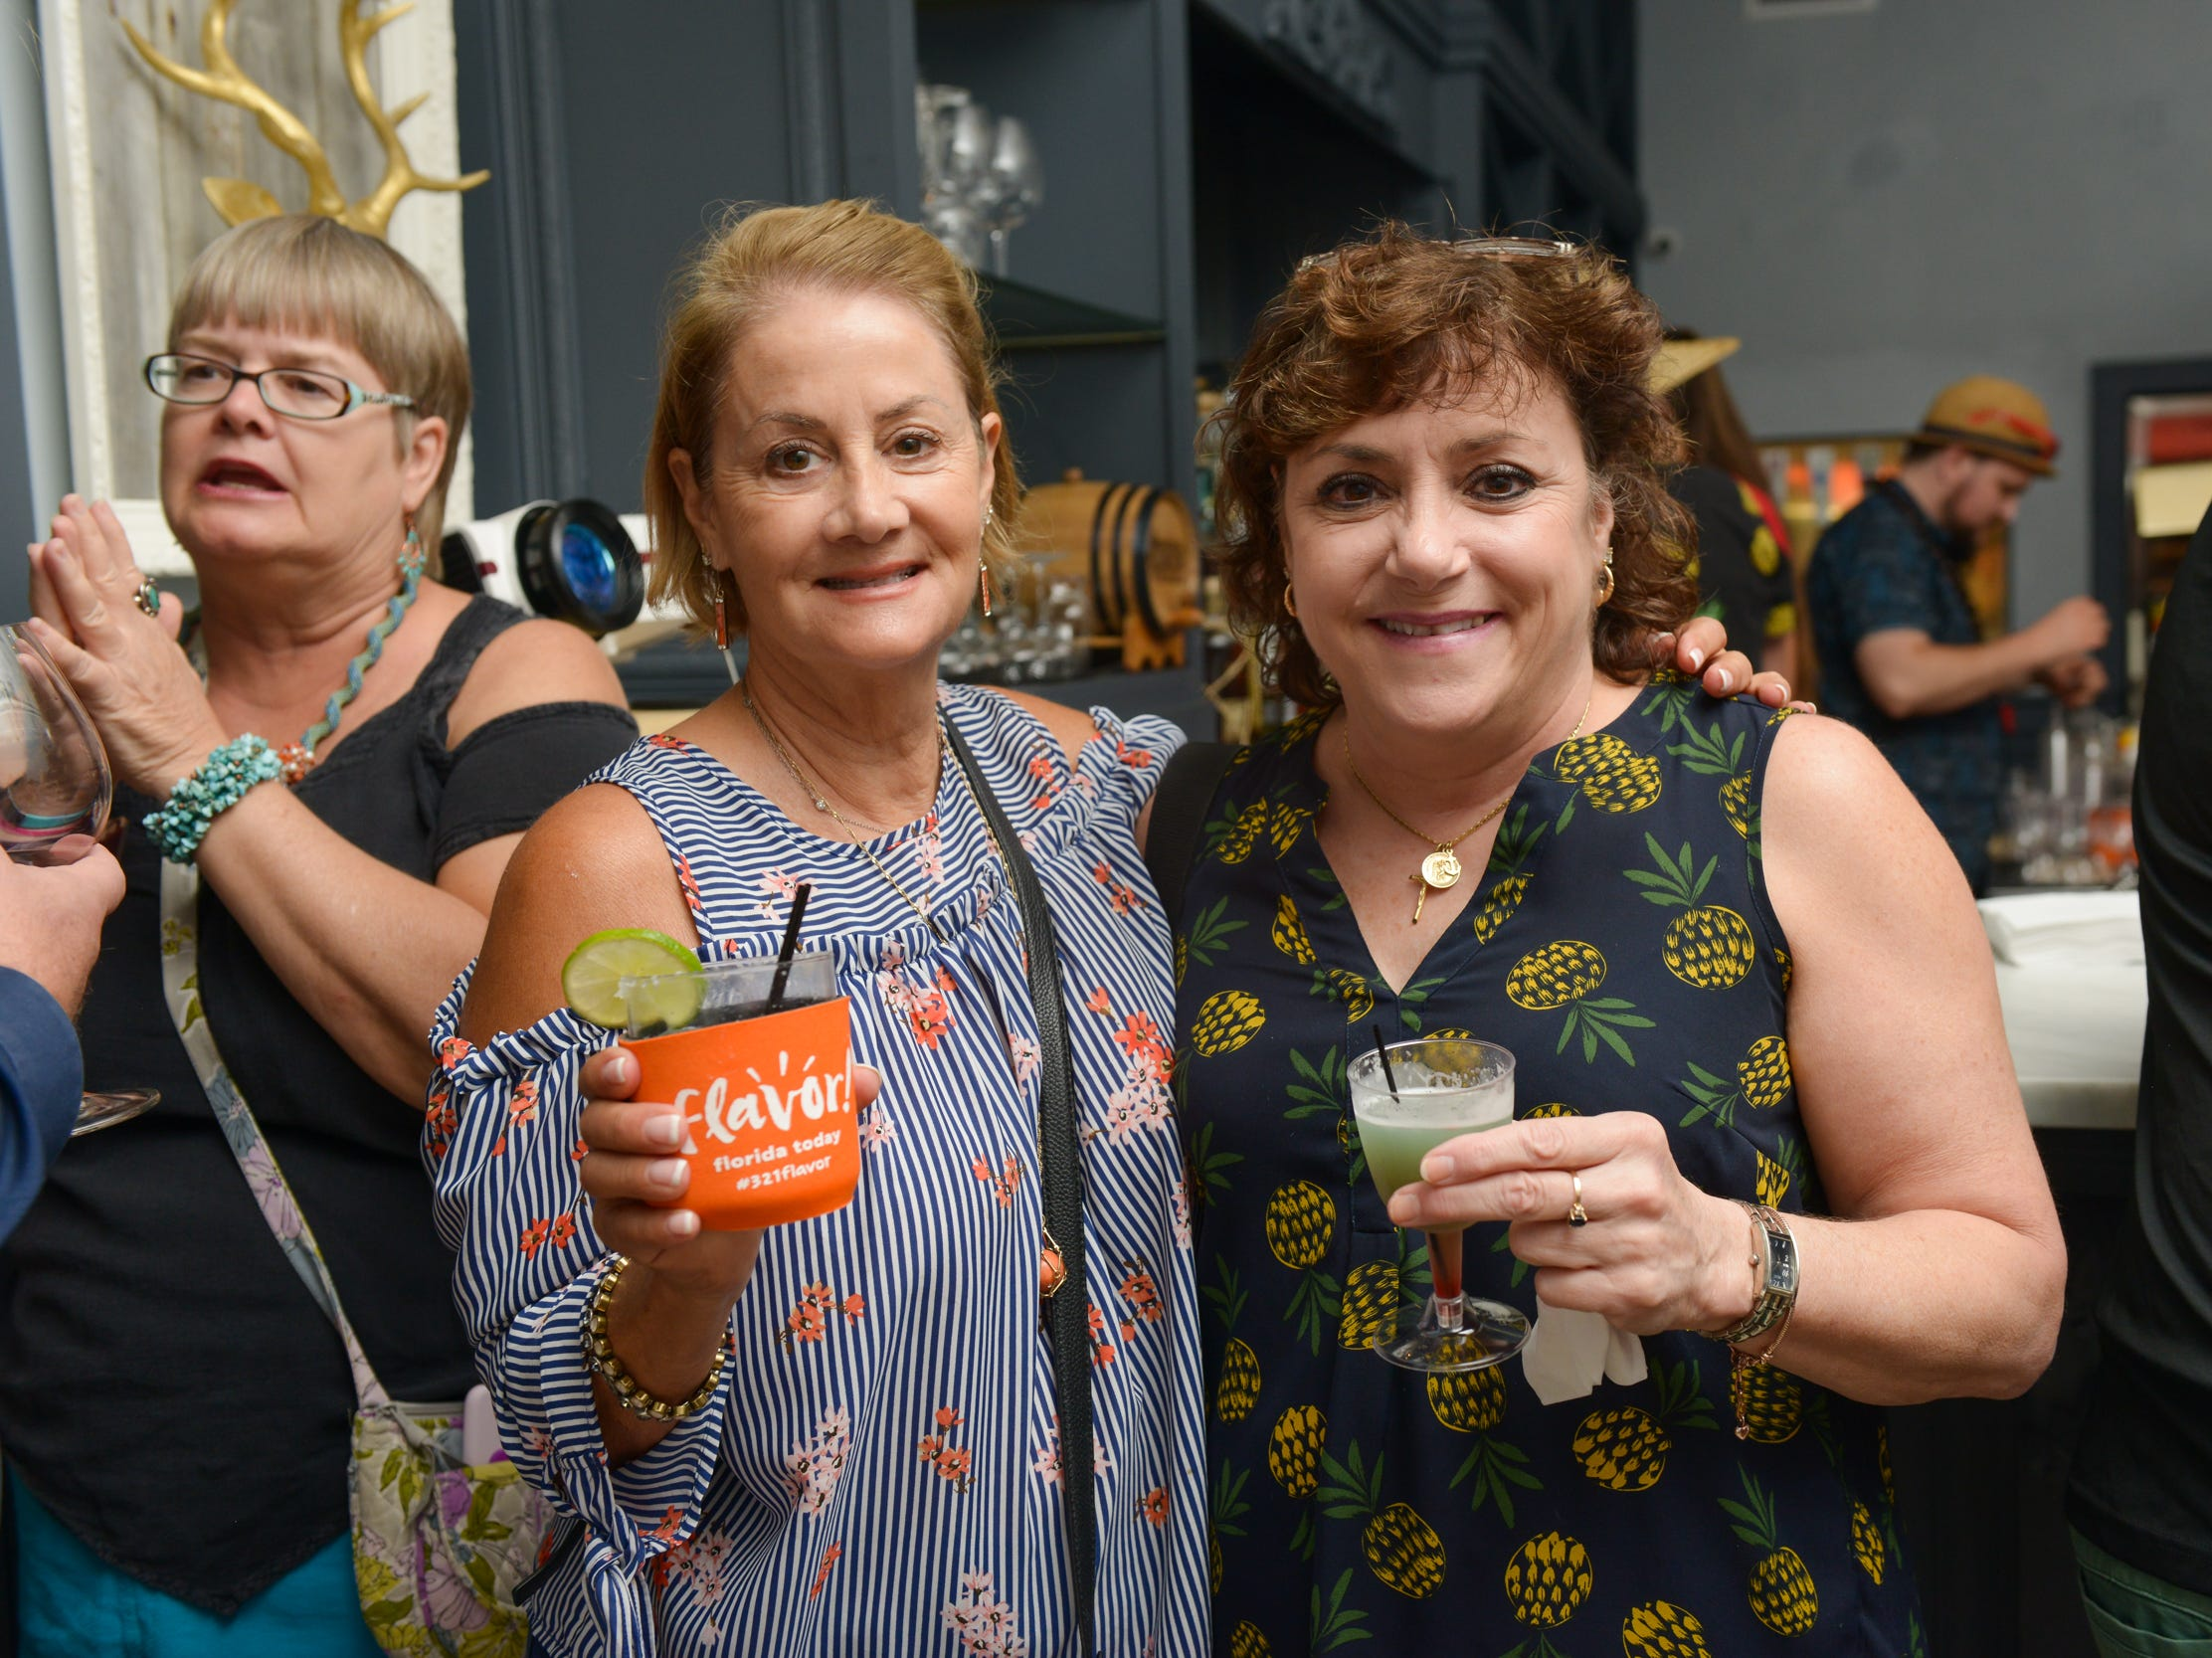 Alexa Brickweg and Doreen Everett at a community gathering to kick off Shark Week, hosted by Florida Today at Crush XI in downtown Melbourne.